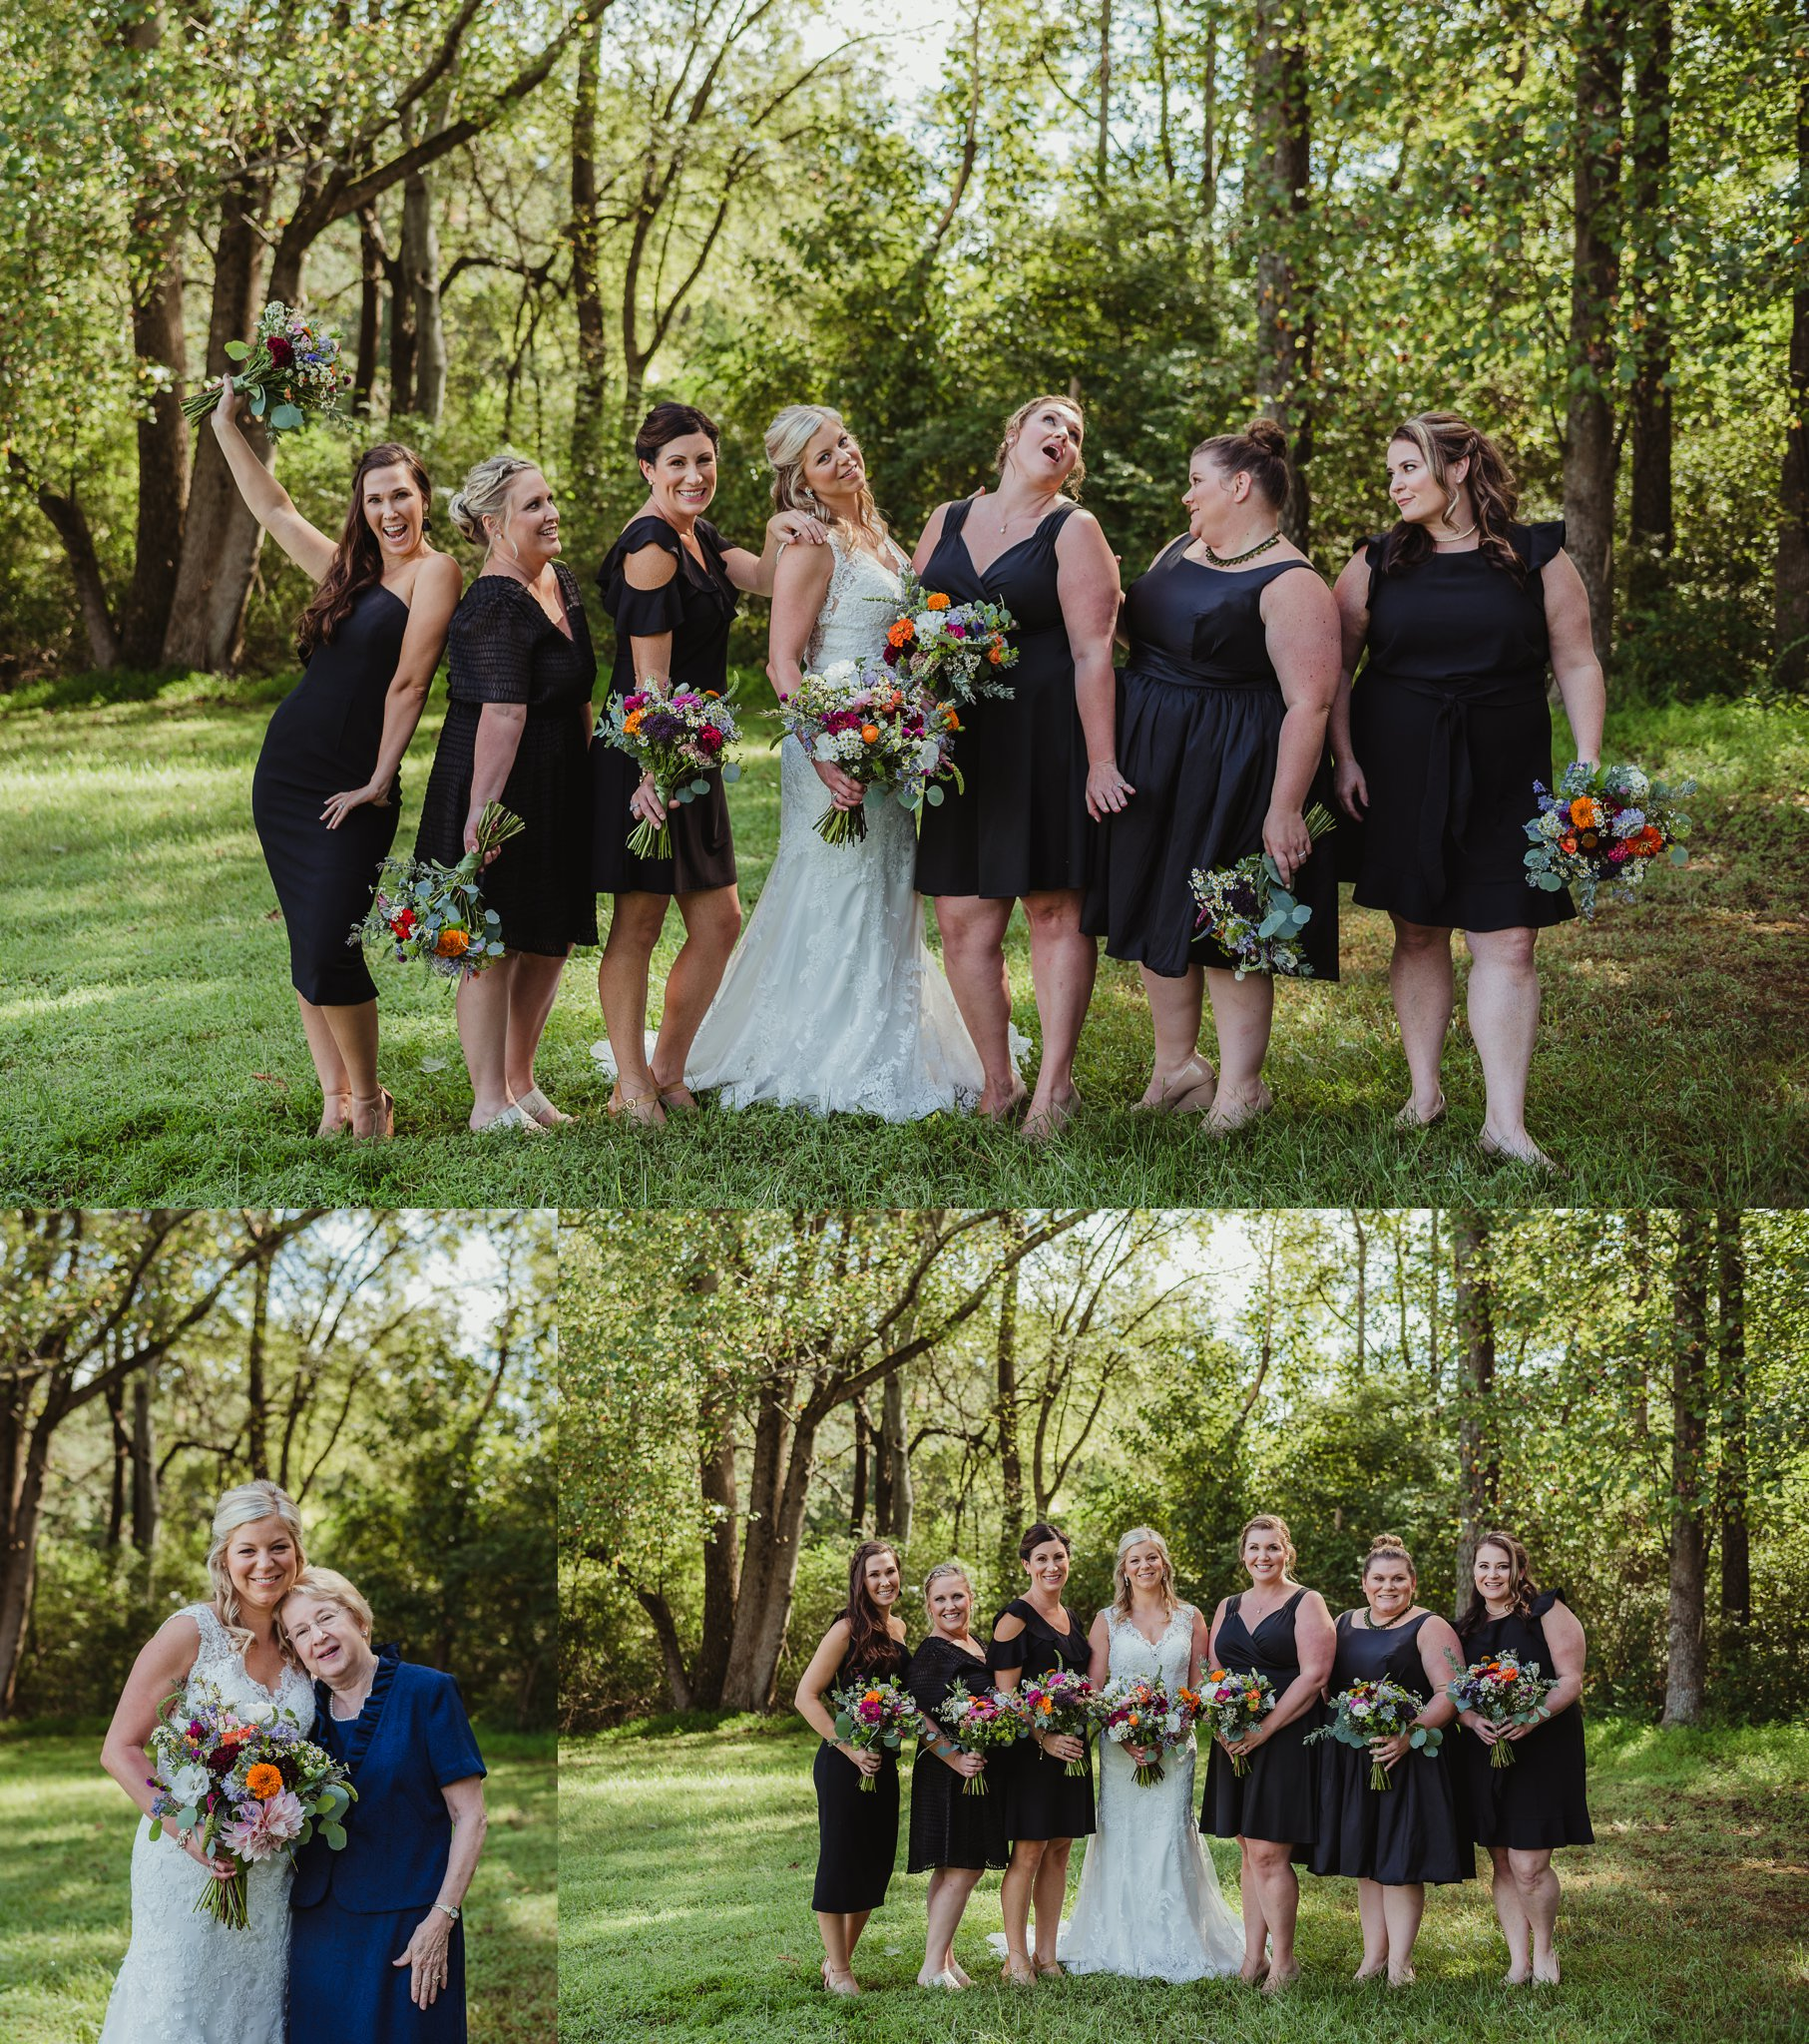 The bride and her bridesmaids pose for portraits with Rose Trail Images after the wedding ceremony at Cedar Grove Acres near North Carolina.